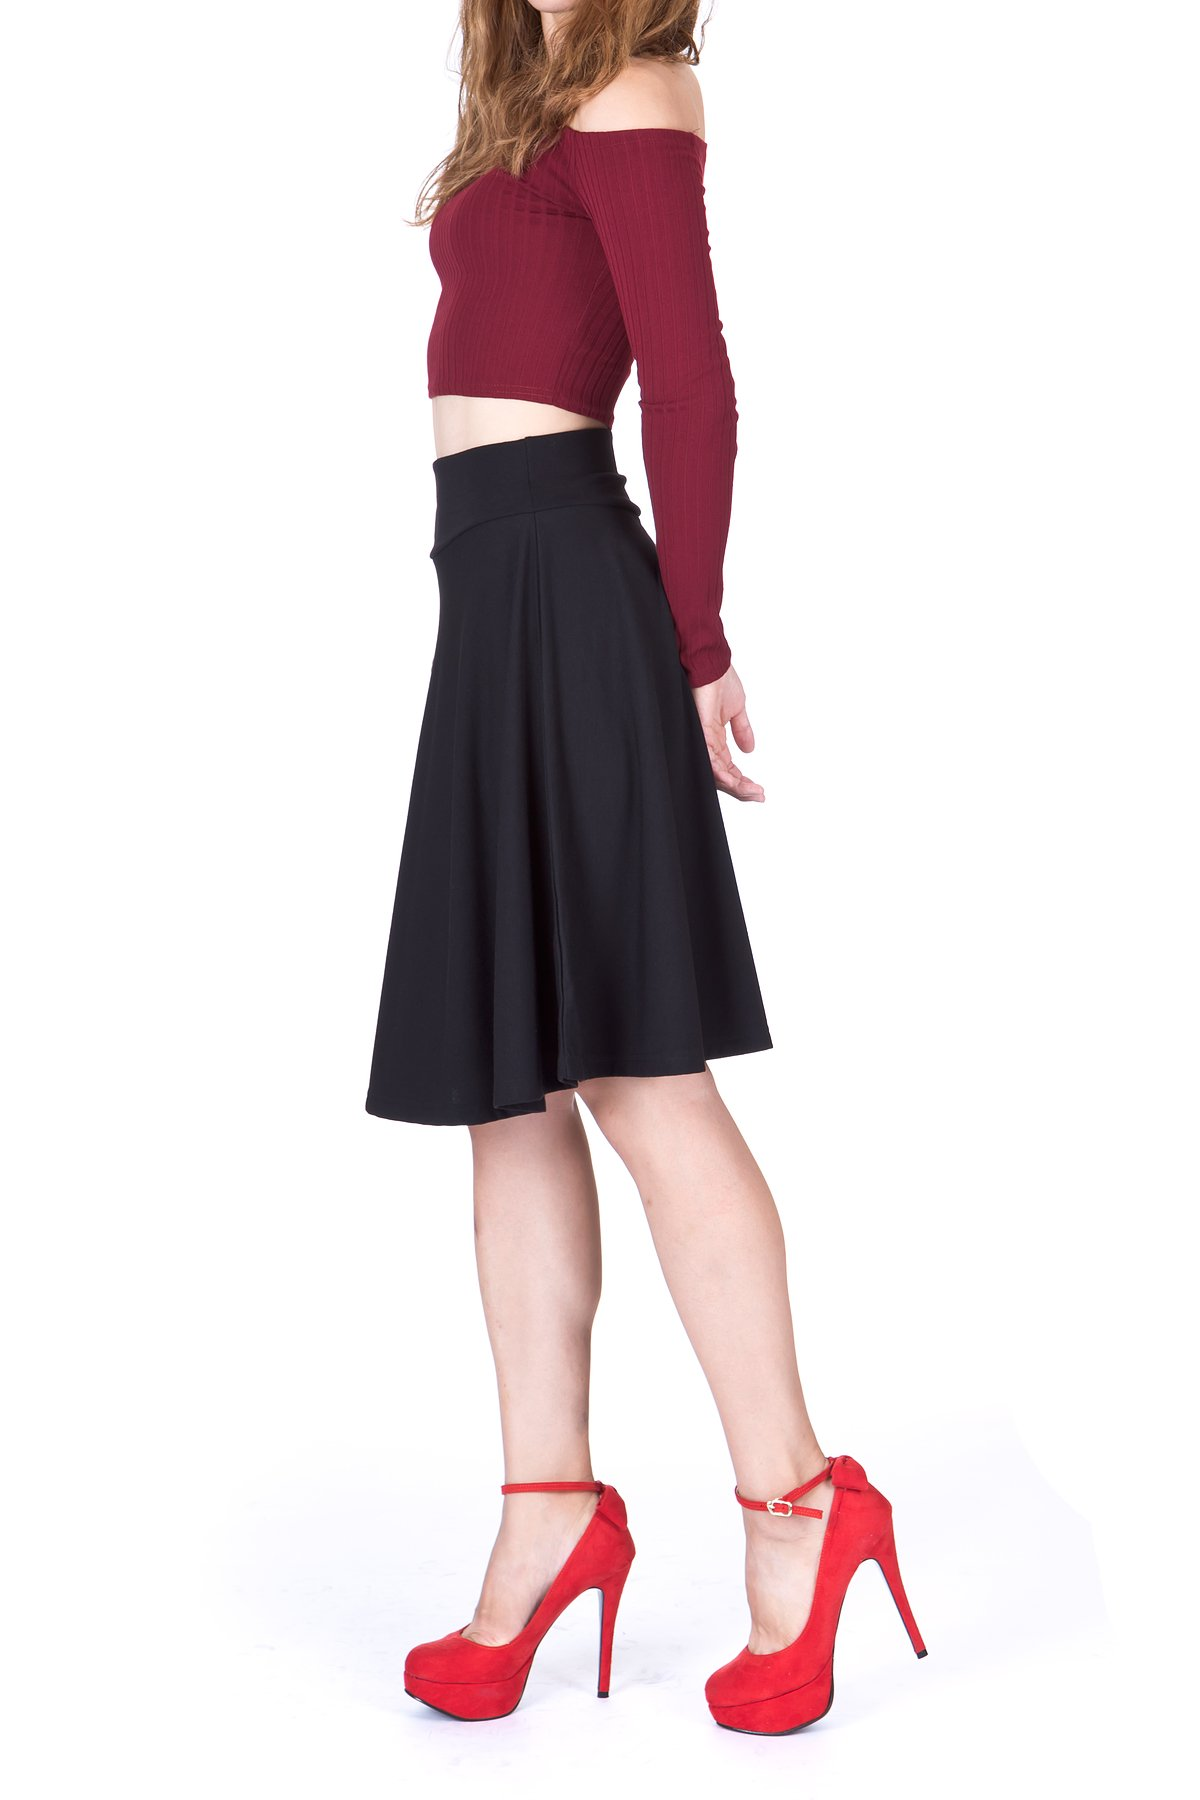 Impeccable Elastic High Waist A line Full Flared Swing Skater Knee Length Skirt Black 1